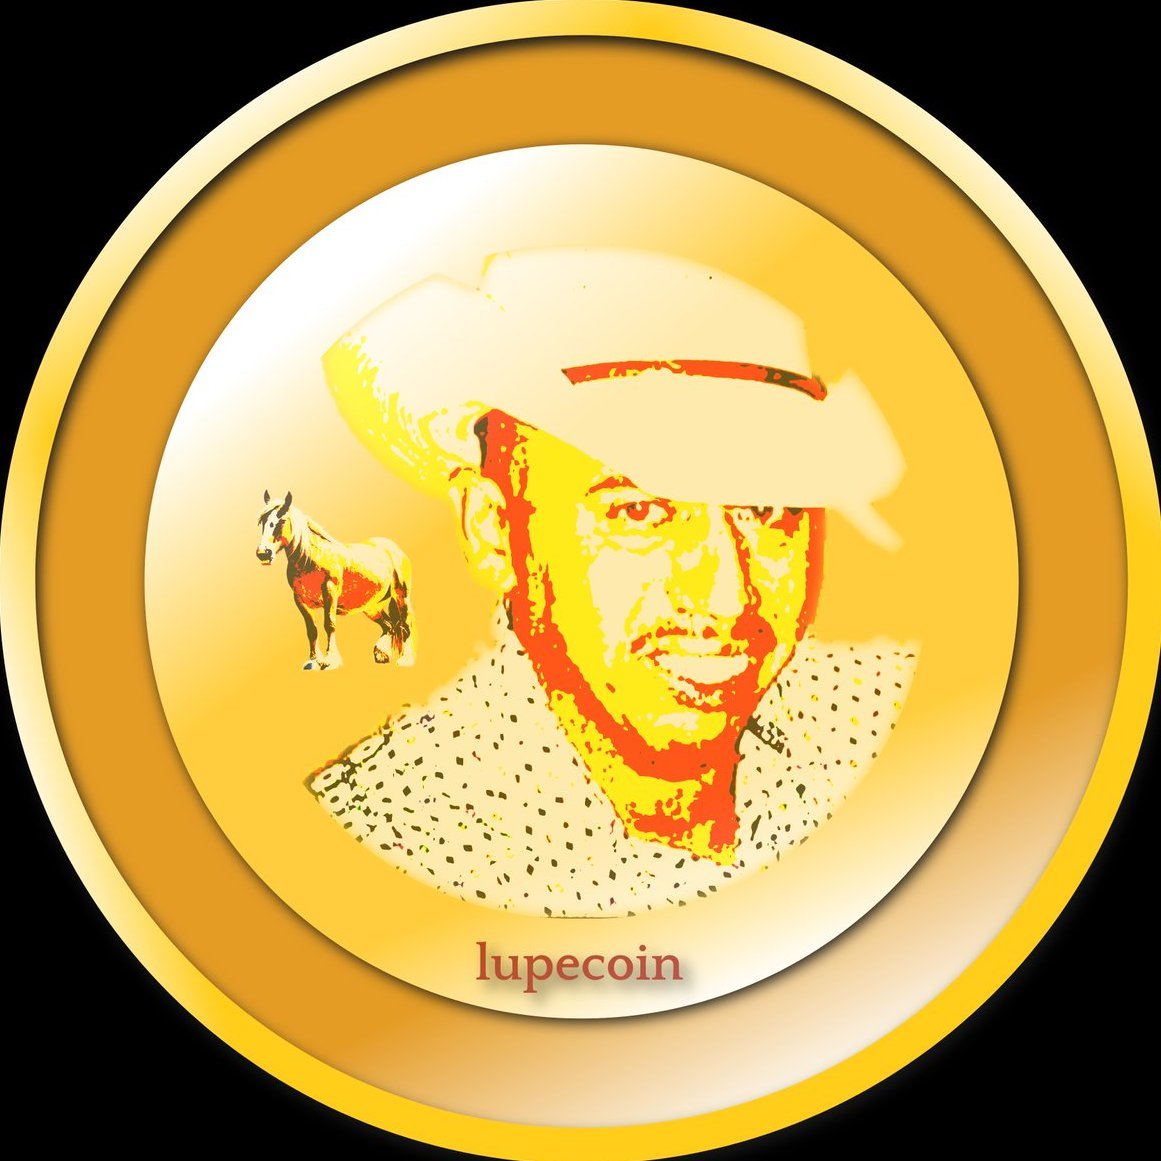 Lupecoin ($Lupe)